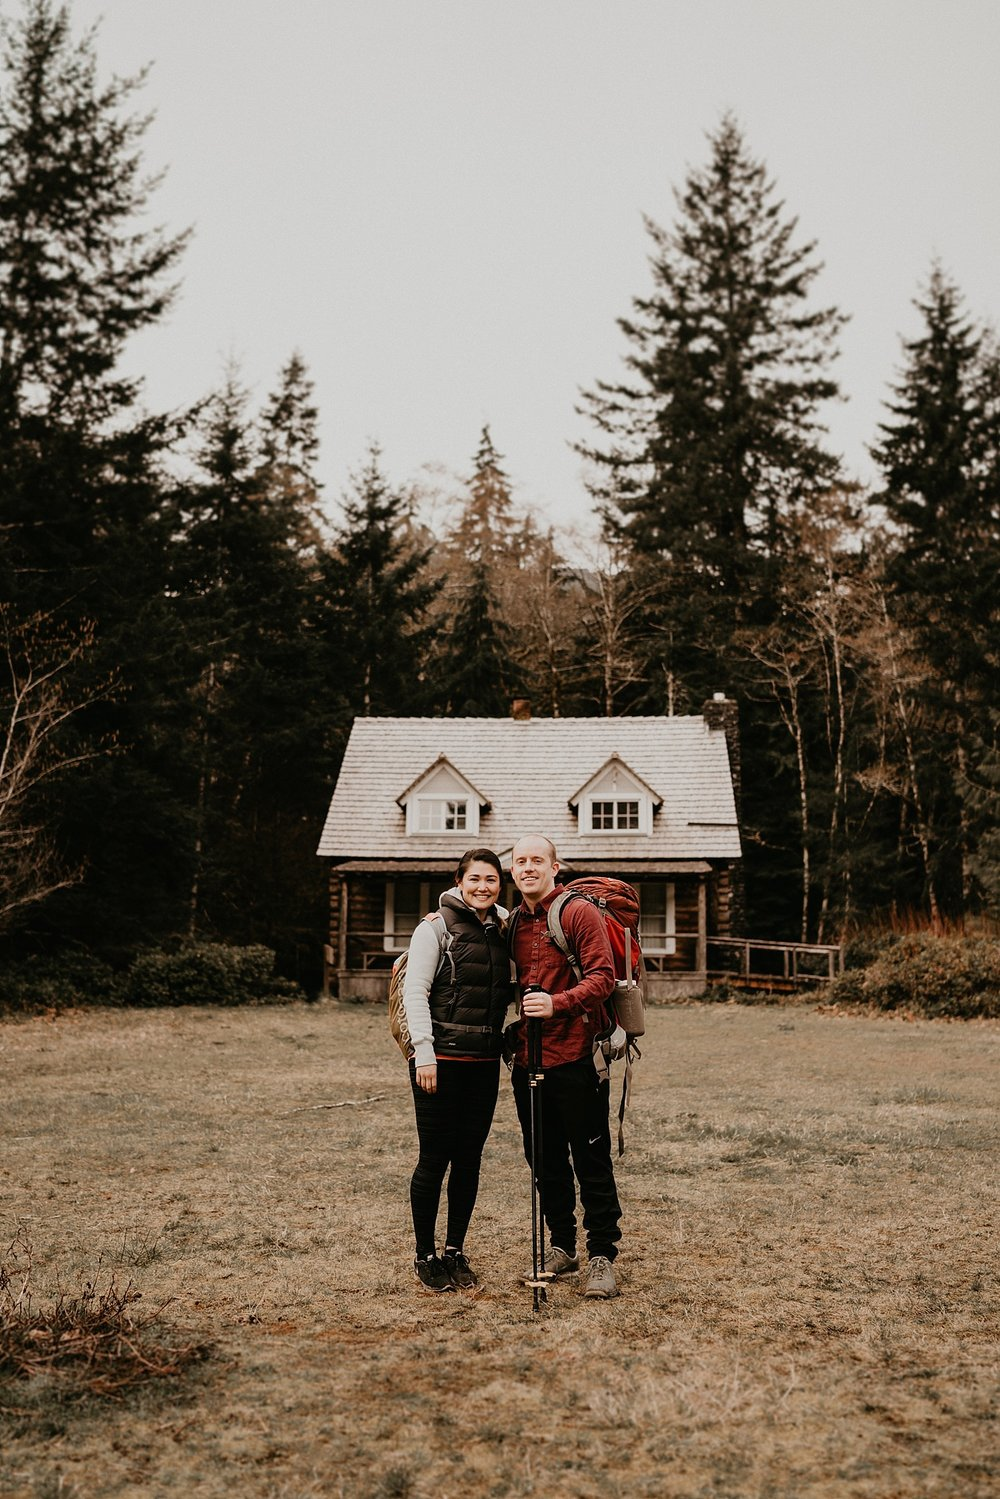 Mount storm king ranger station cute adventure engagement session Seattle PNW Wedding Photographer